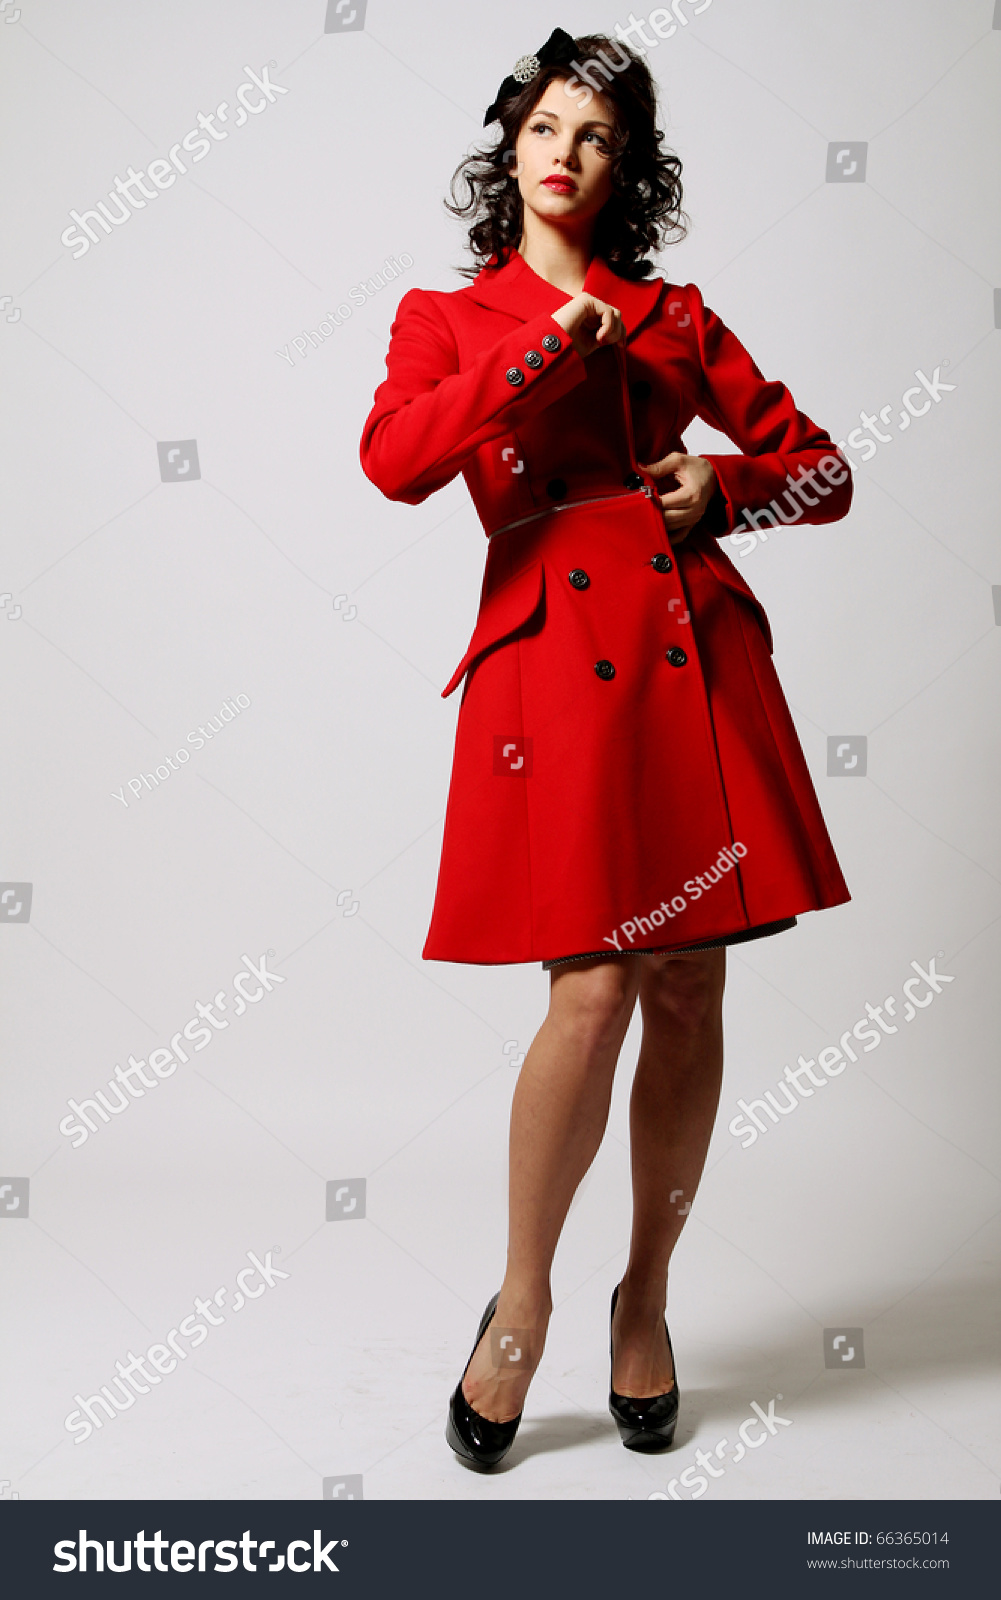 Woman In Red Coat EoFsXi